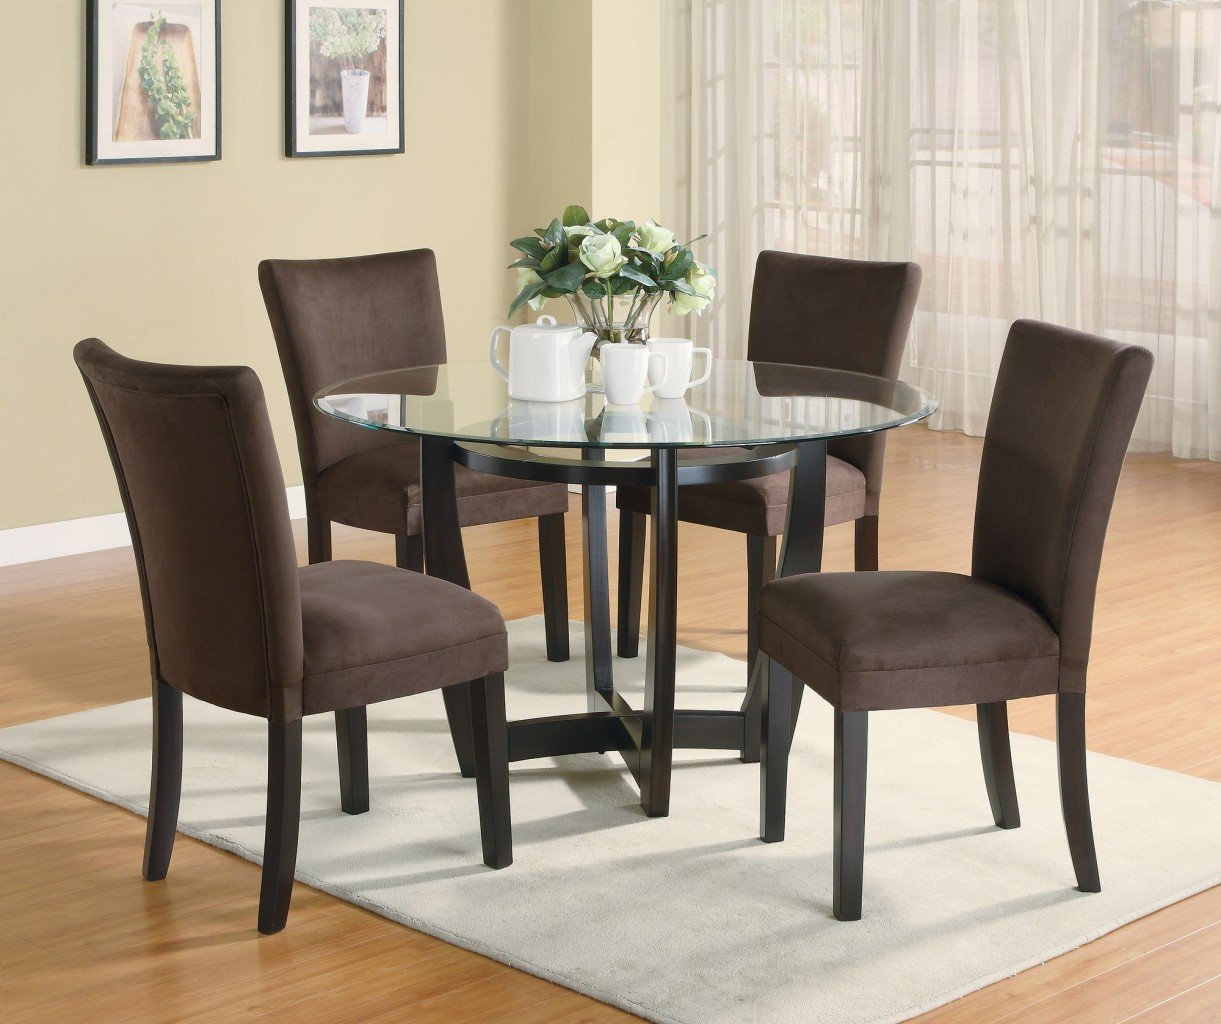 Cheap Dining Room Table Sets  Home Furniture Design. Egress Walkout Basement. How To Reduce Humidity In Basement. Sports Basement Marina. Basement Complex Leeds. Basement Waterproofing Supplies Channel. Basement Membrane Diagram. Hgtv Basement Flooring. Innovative Basement Systems Reviews